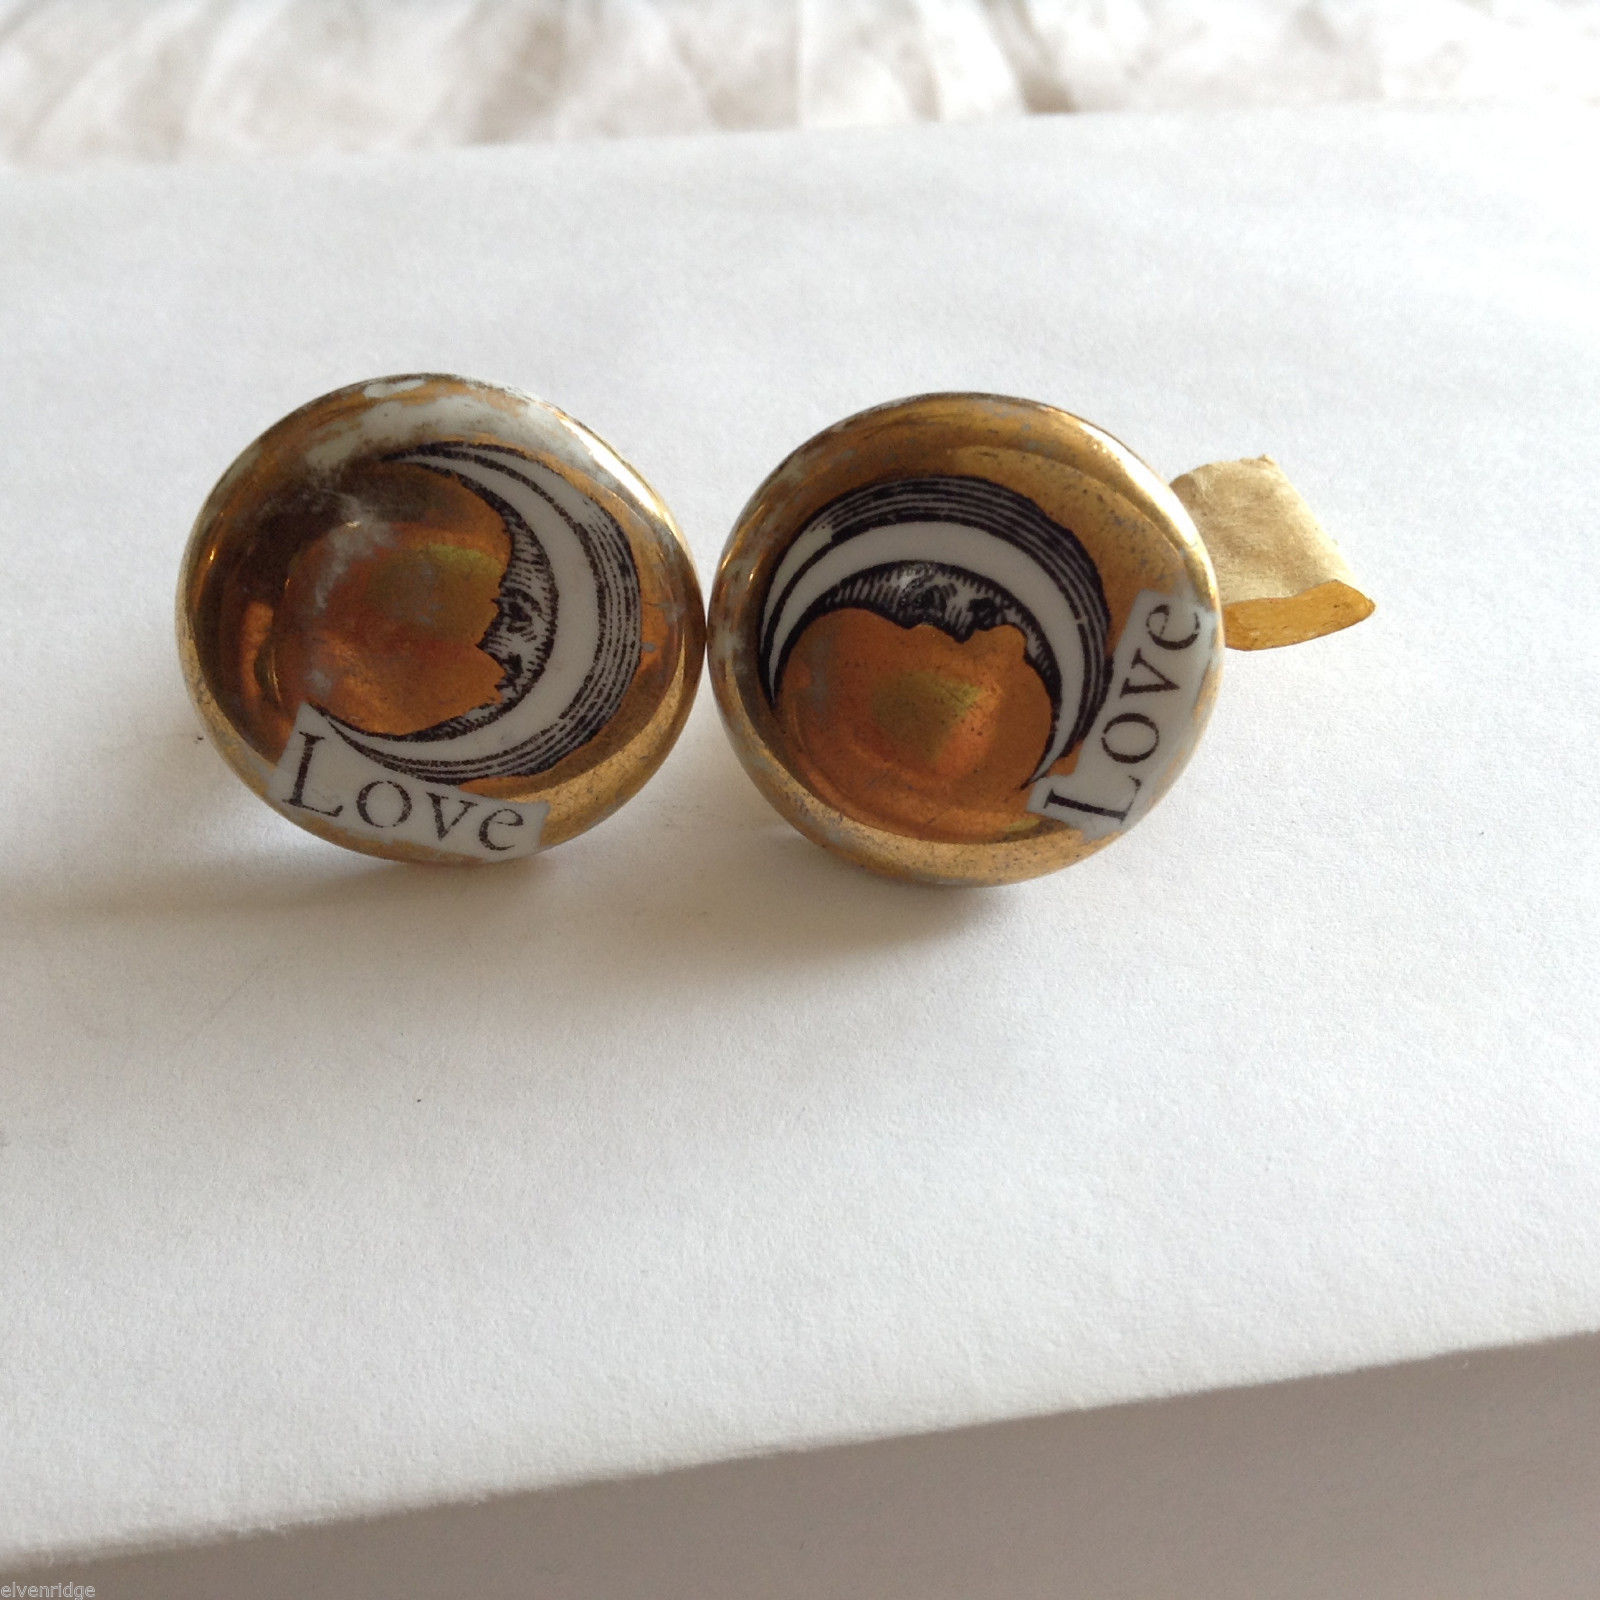 Vintage Gold Plated Enamel Cufflinks with Moons and LOVE sign